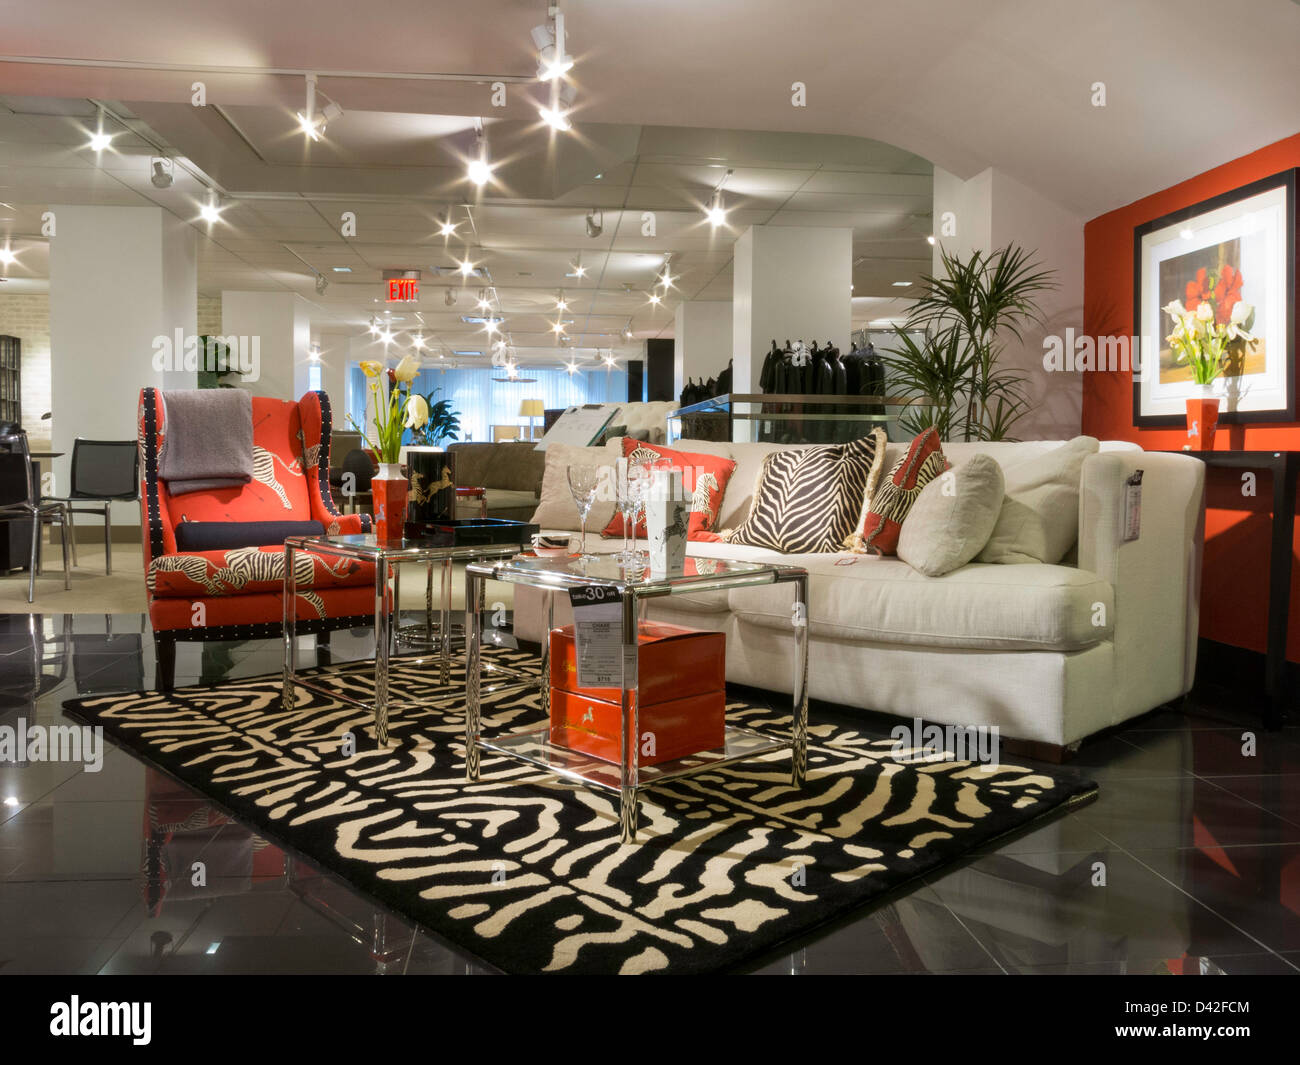 Home furnishings in bloomingdale 39 s department store for Home good stores nyc